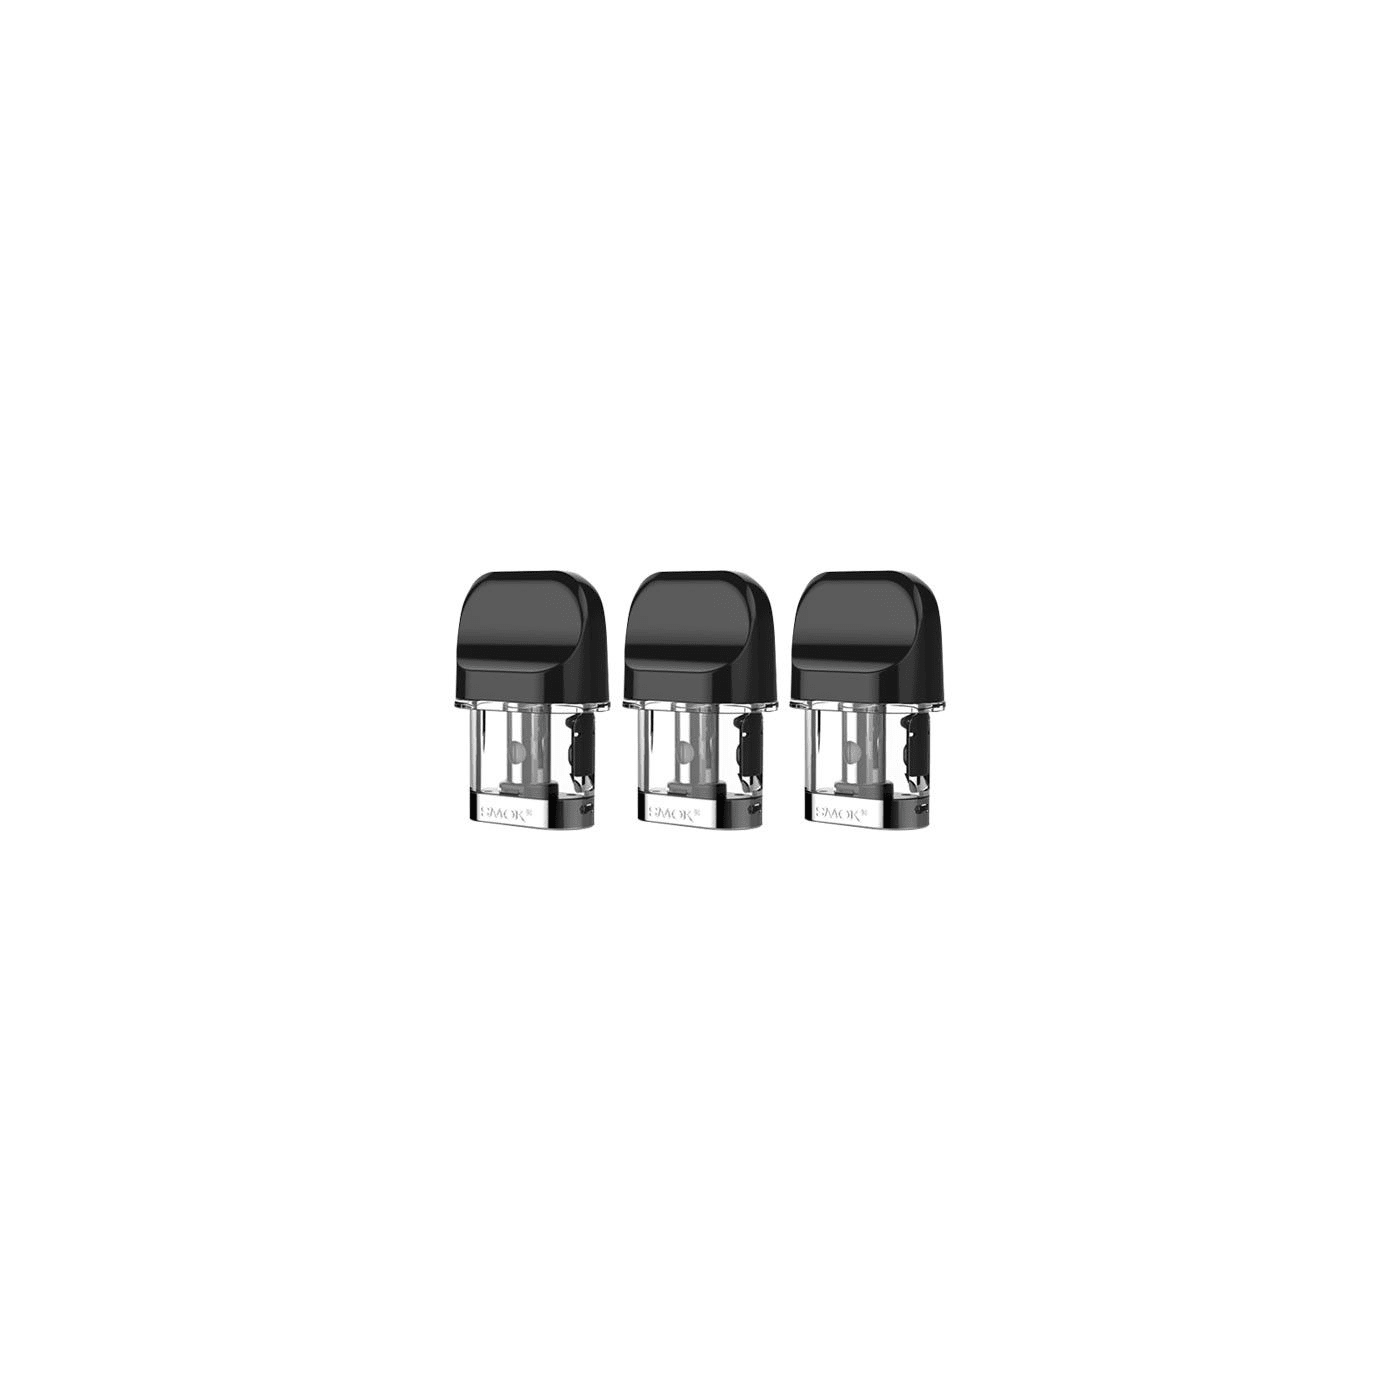 Smok Novo 2 DC Replacement Pod - 3 Pack